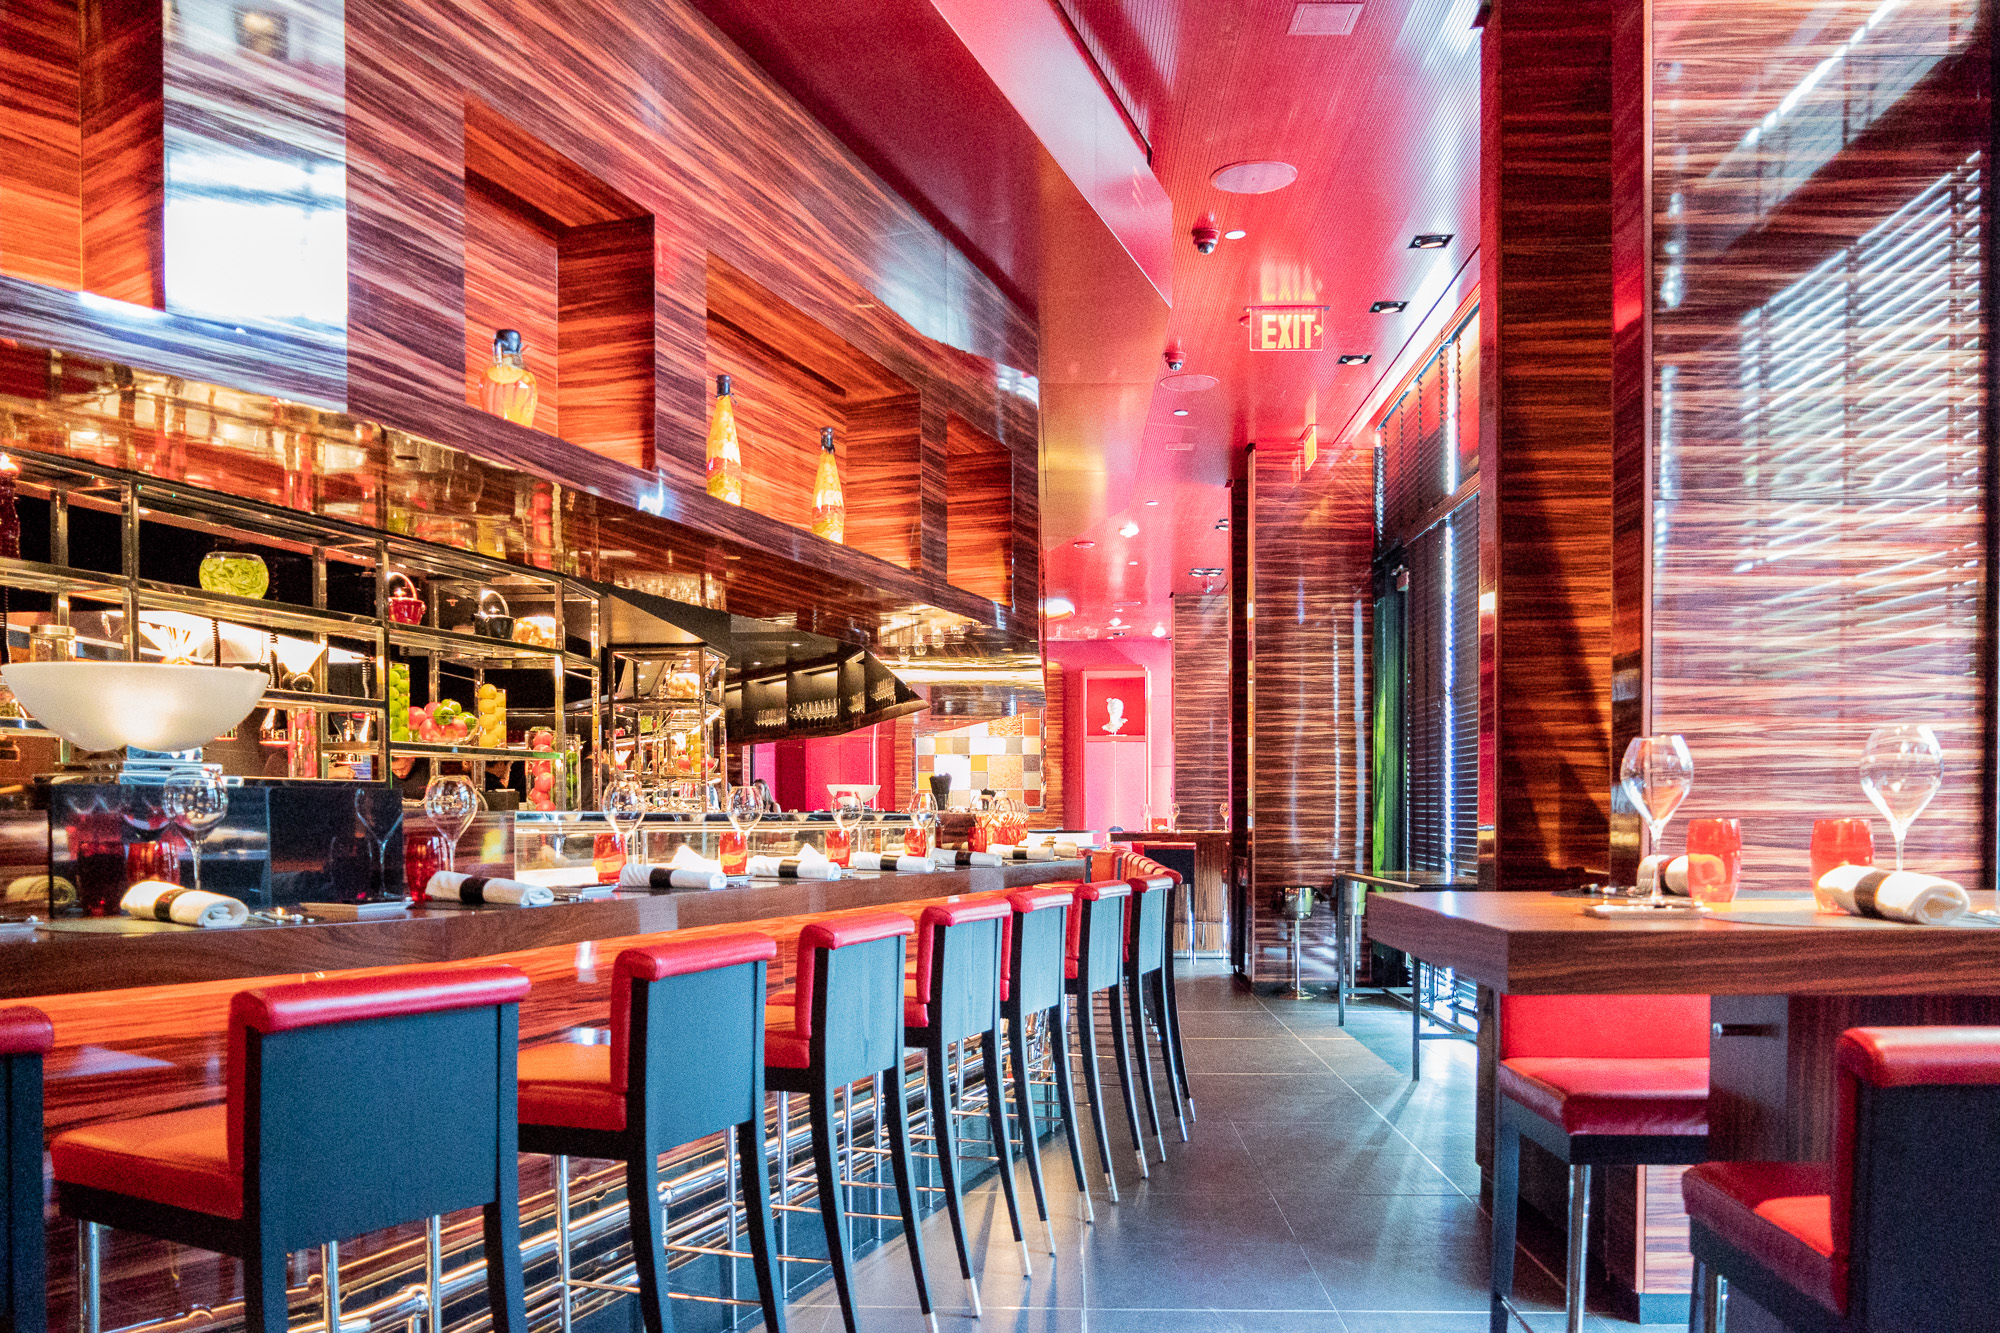 Fine Dining Showstopper L'Atelier de Joël Robuchon Debuts in the Design District